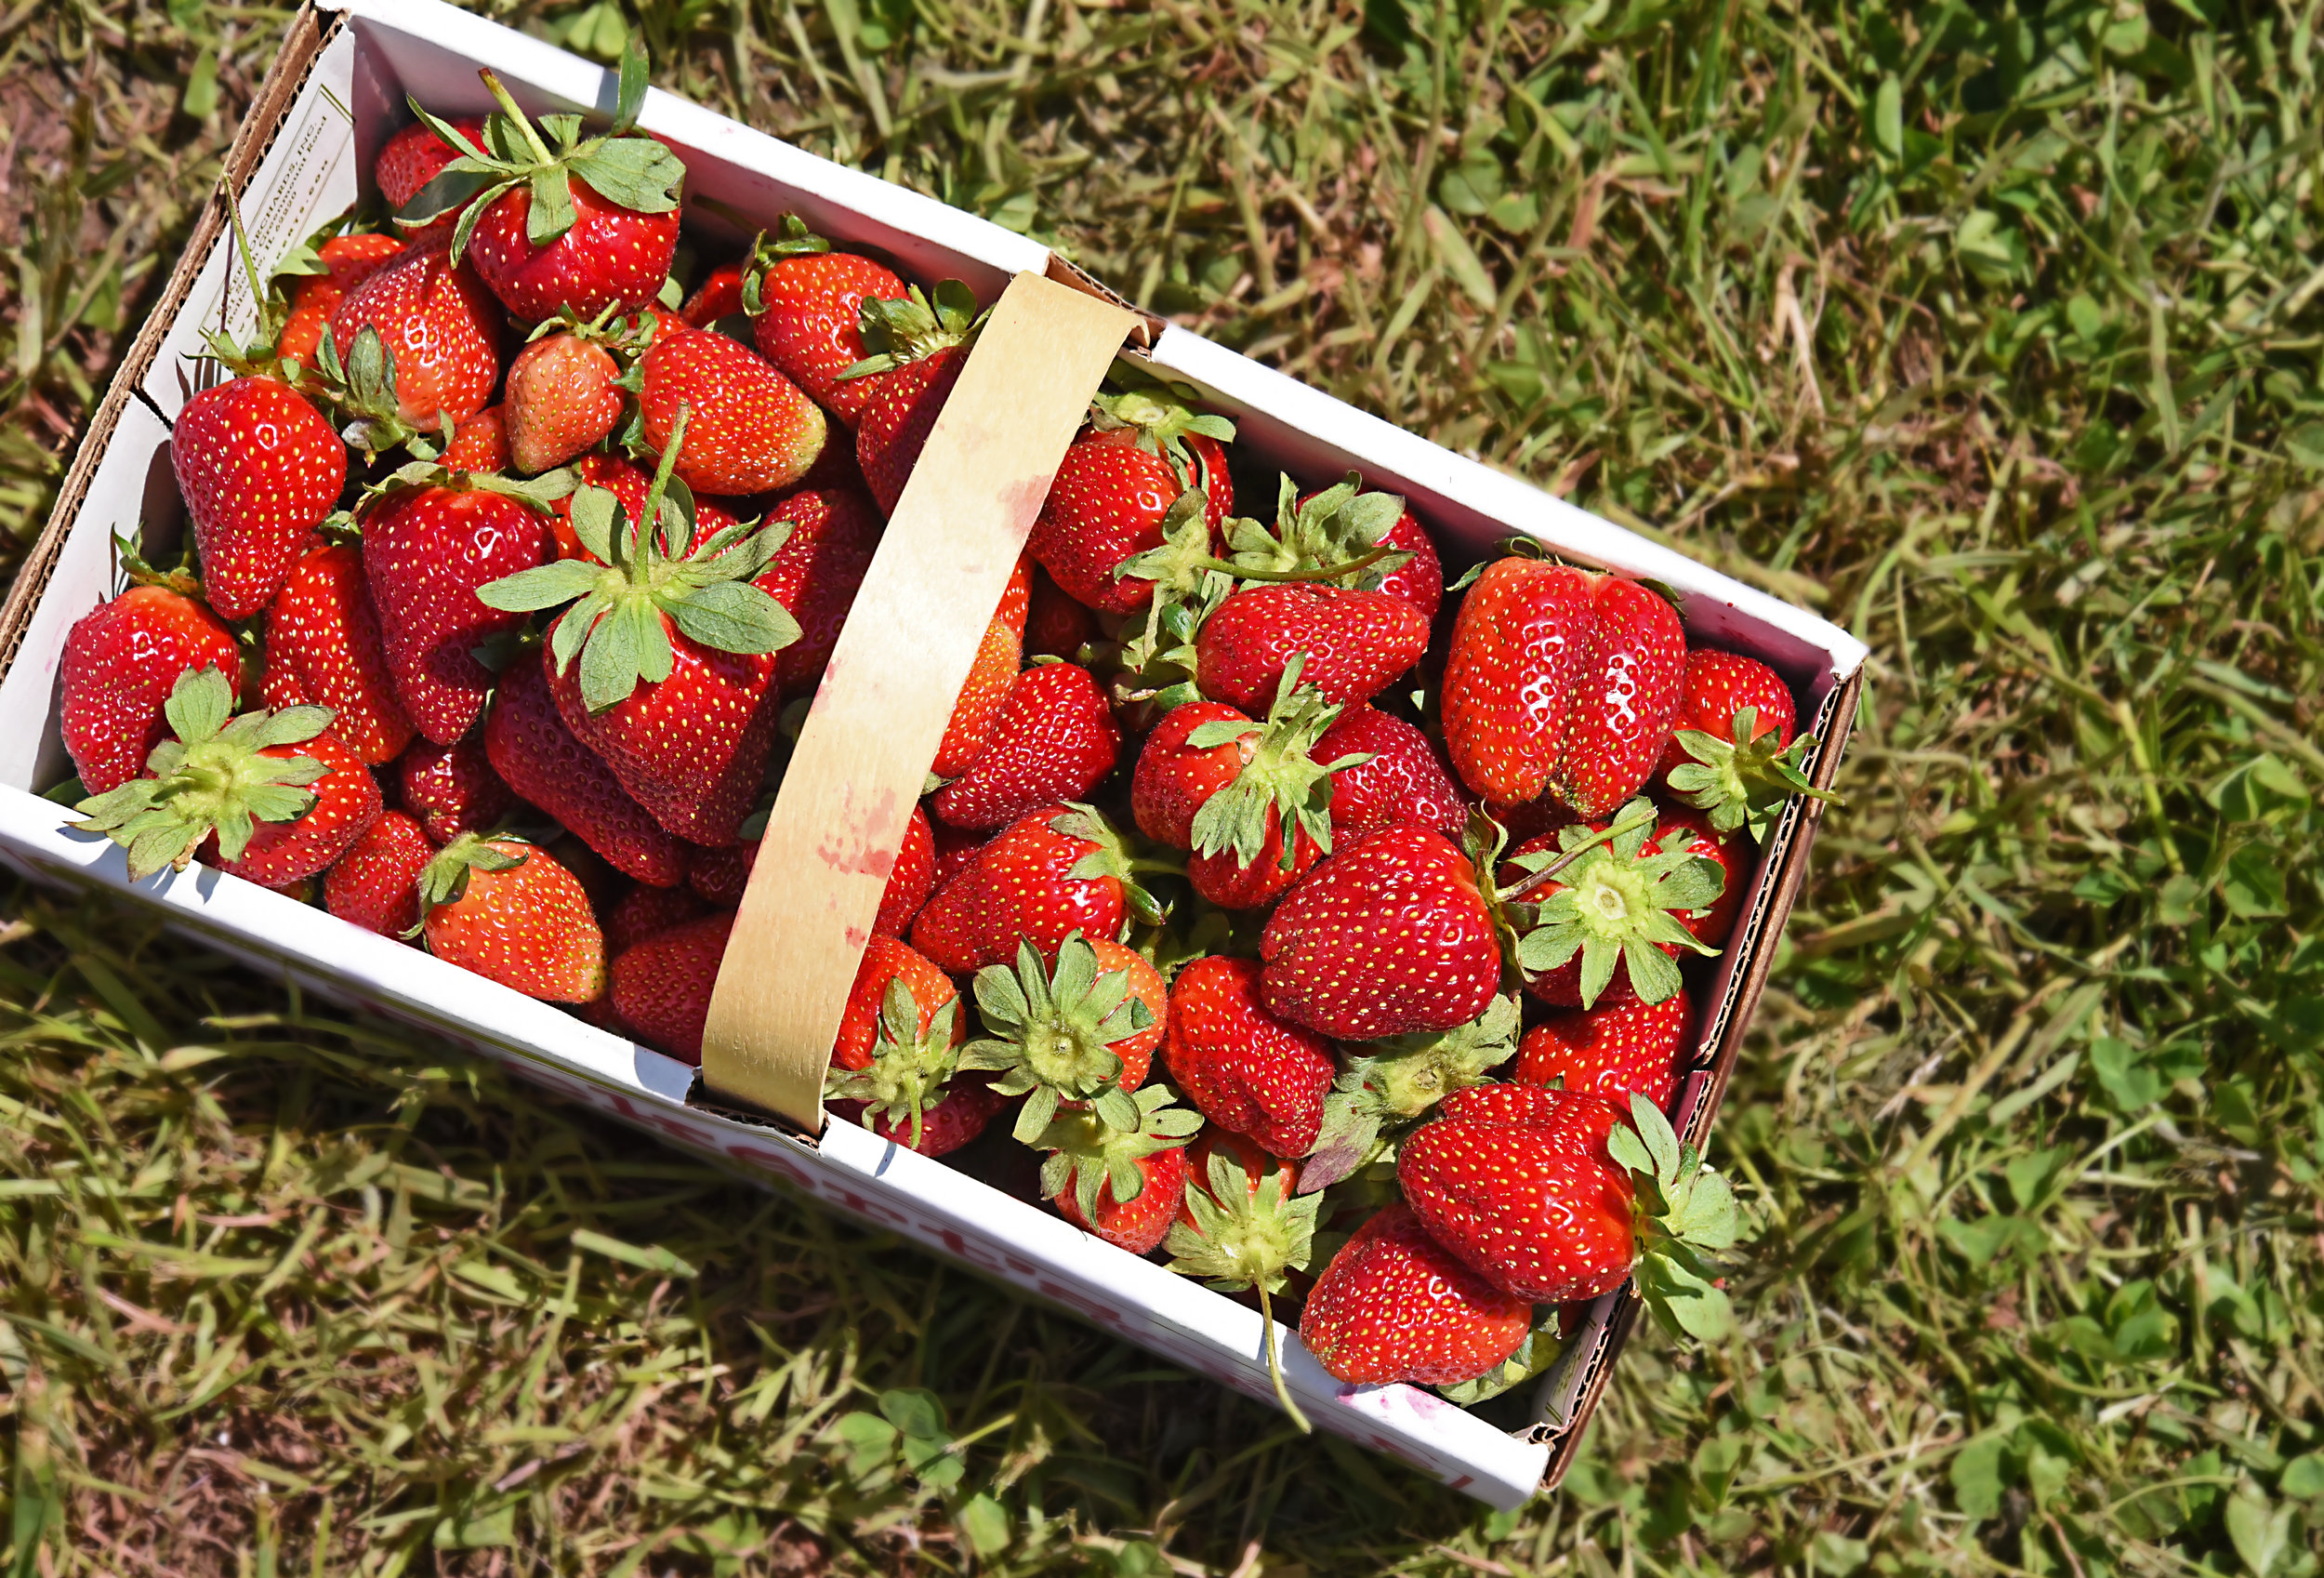 strawberry_picking (29).JPG